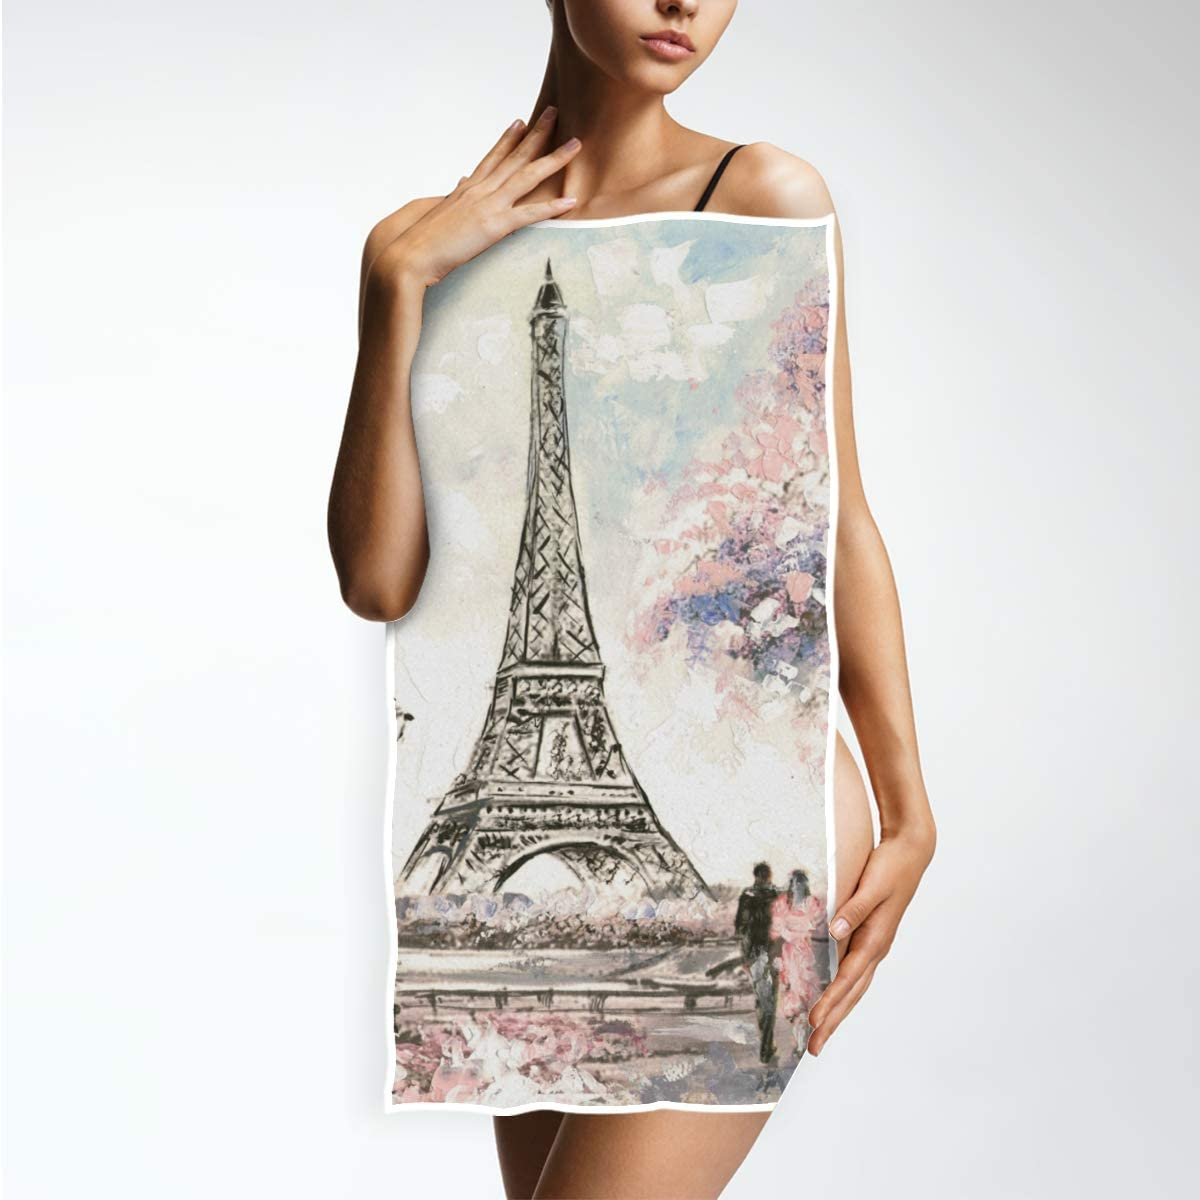 15 x 30 inches DOMIKING Guest Hand Towels for Bathroom Street View of Paris Landscape Decorative Fingertip Towels for Hotel Kitchen Spa Gym Yoga